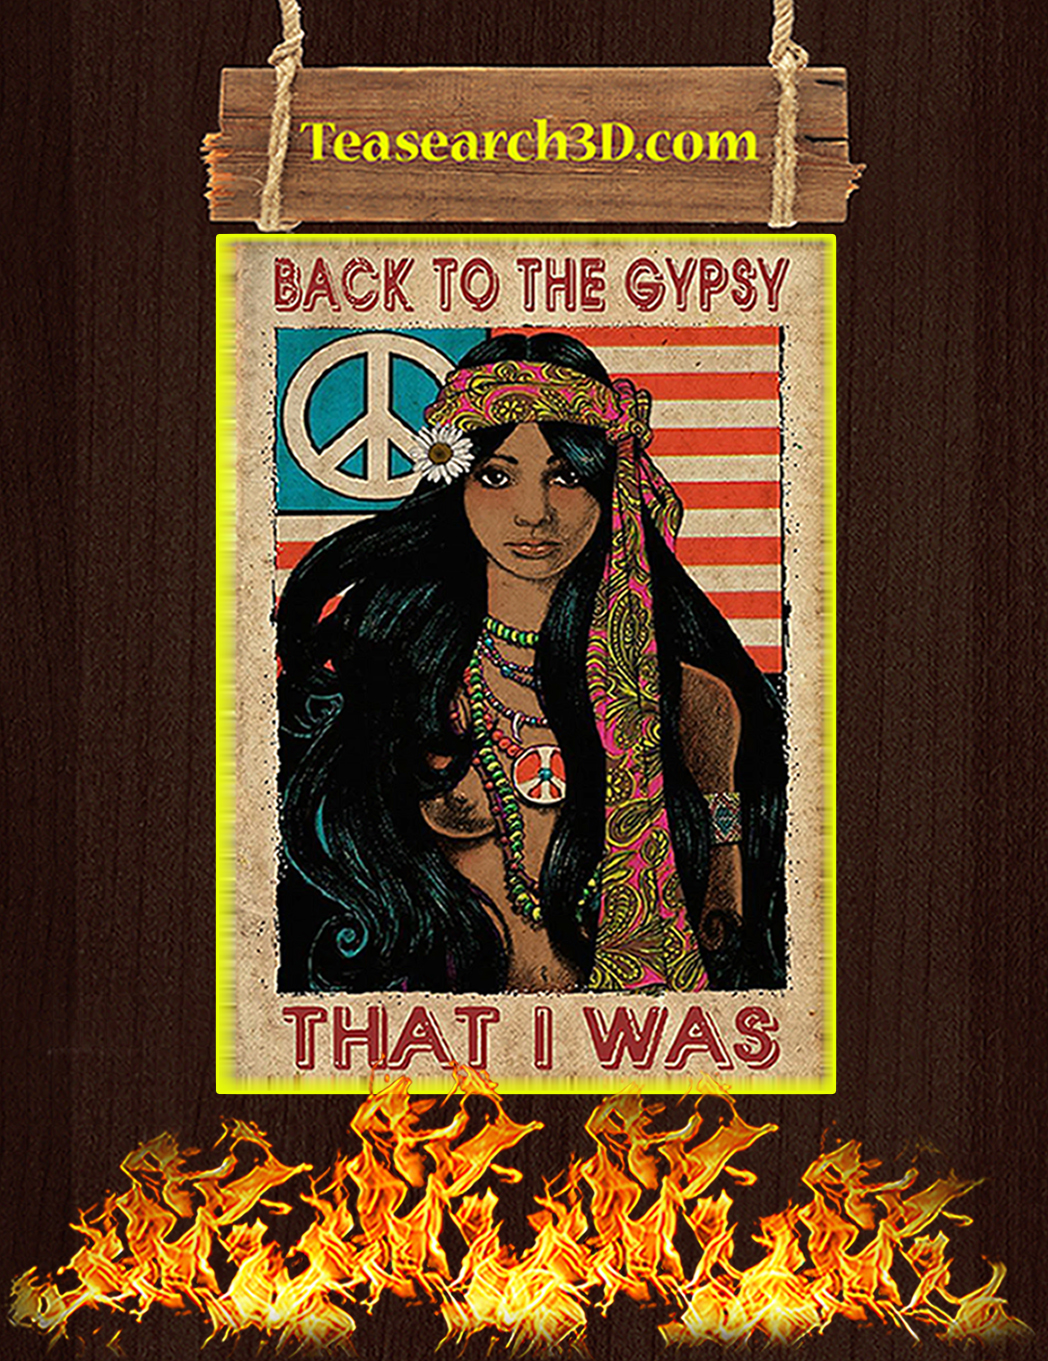 Black girl Back to the gypsy that I was poster A1